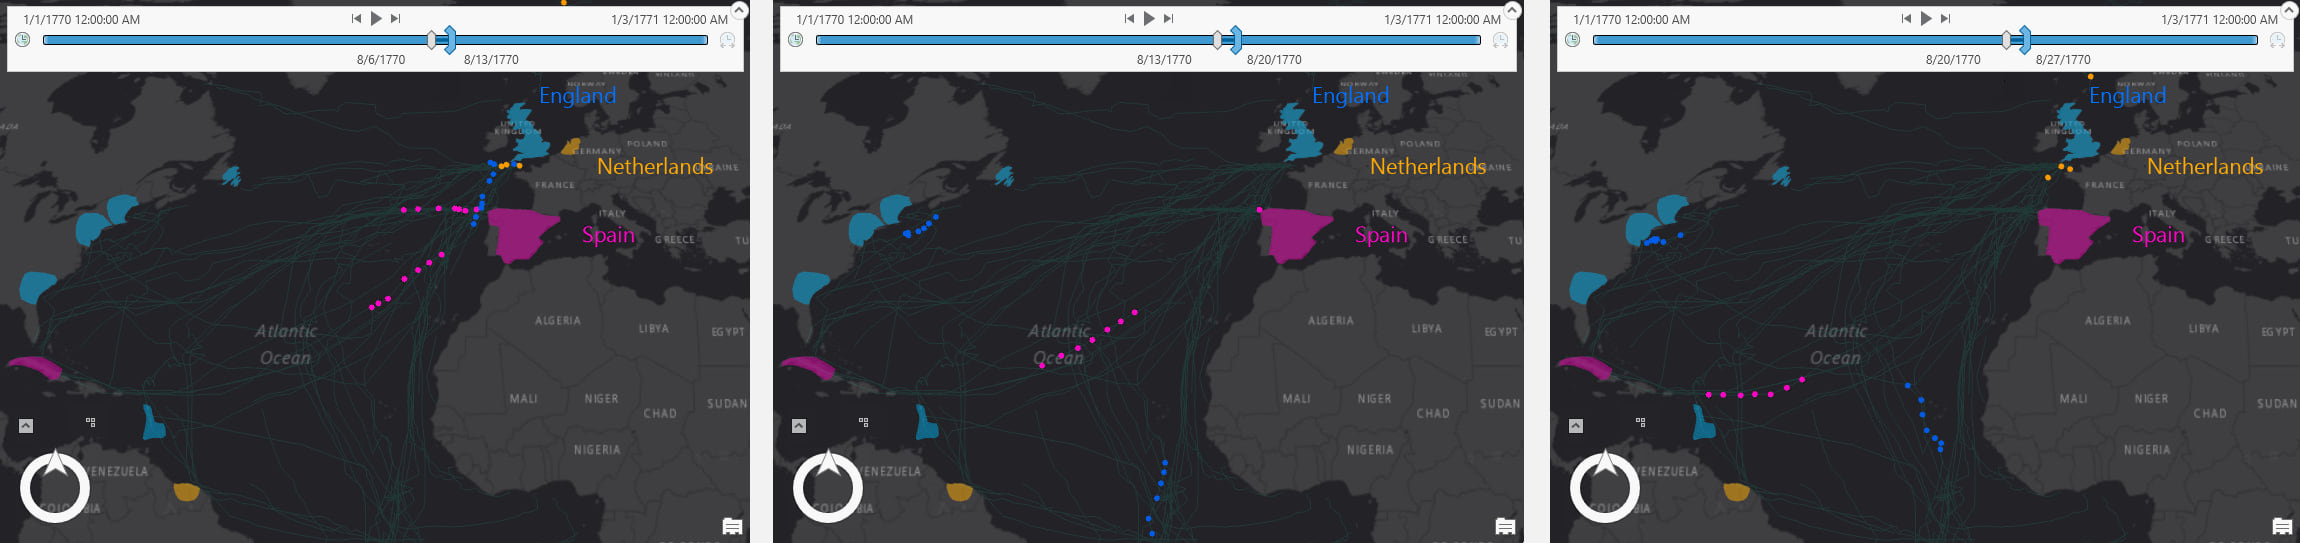 Three weeks of shipping traffic from 1770